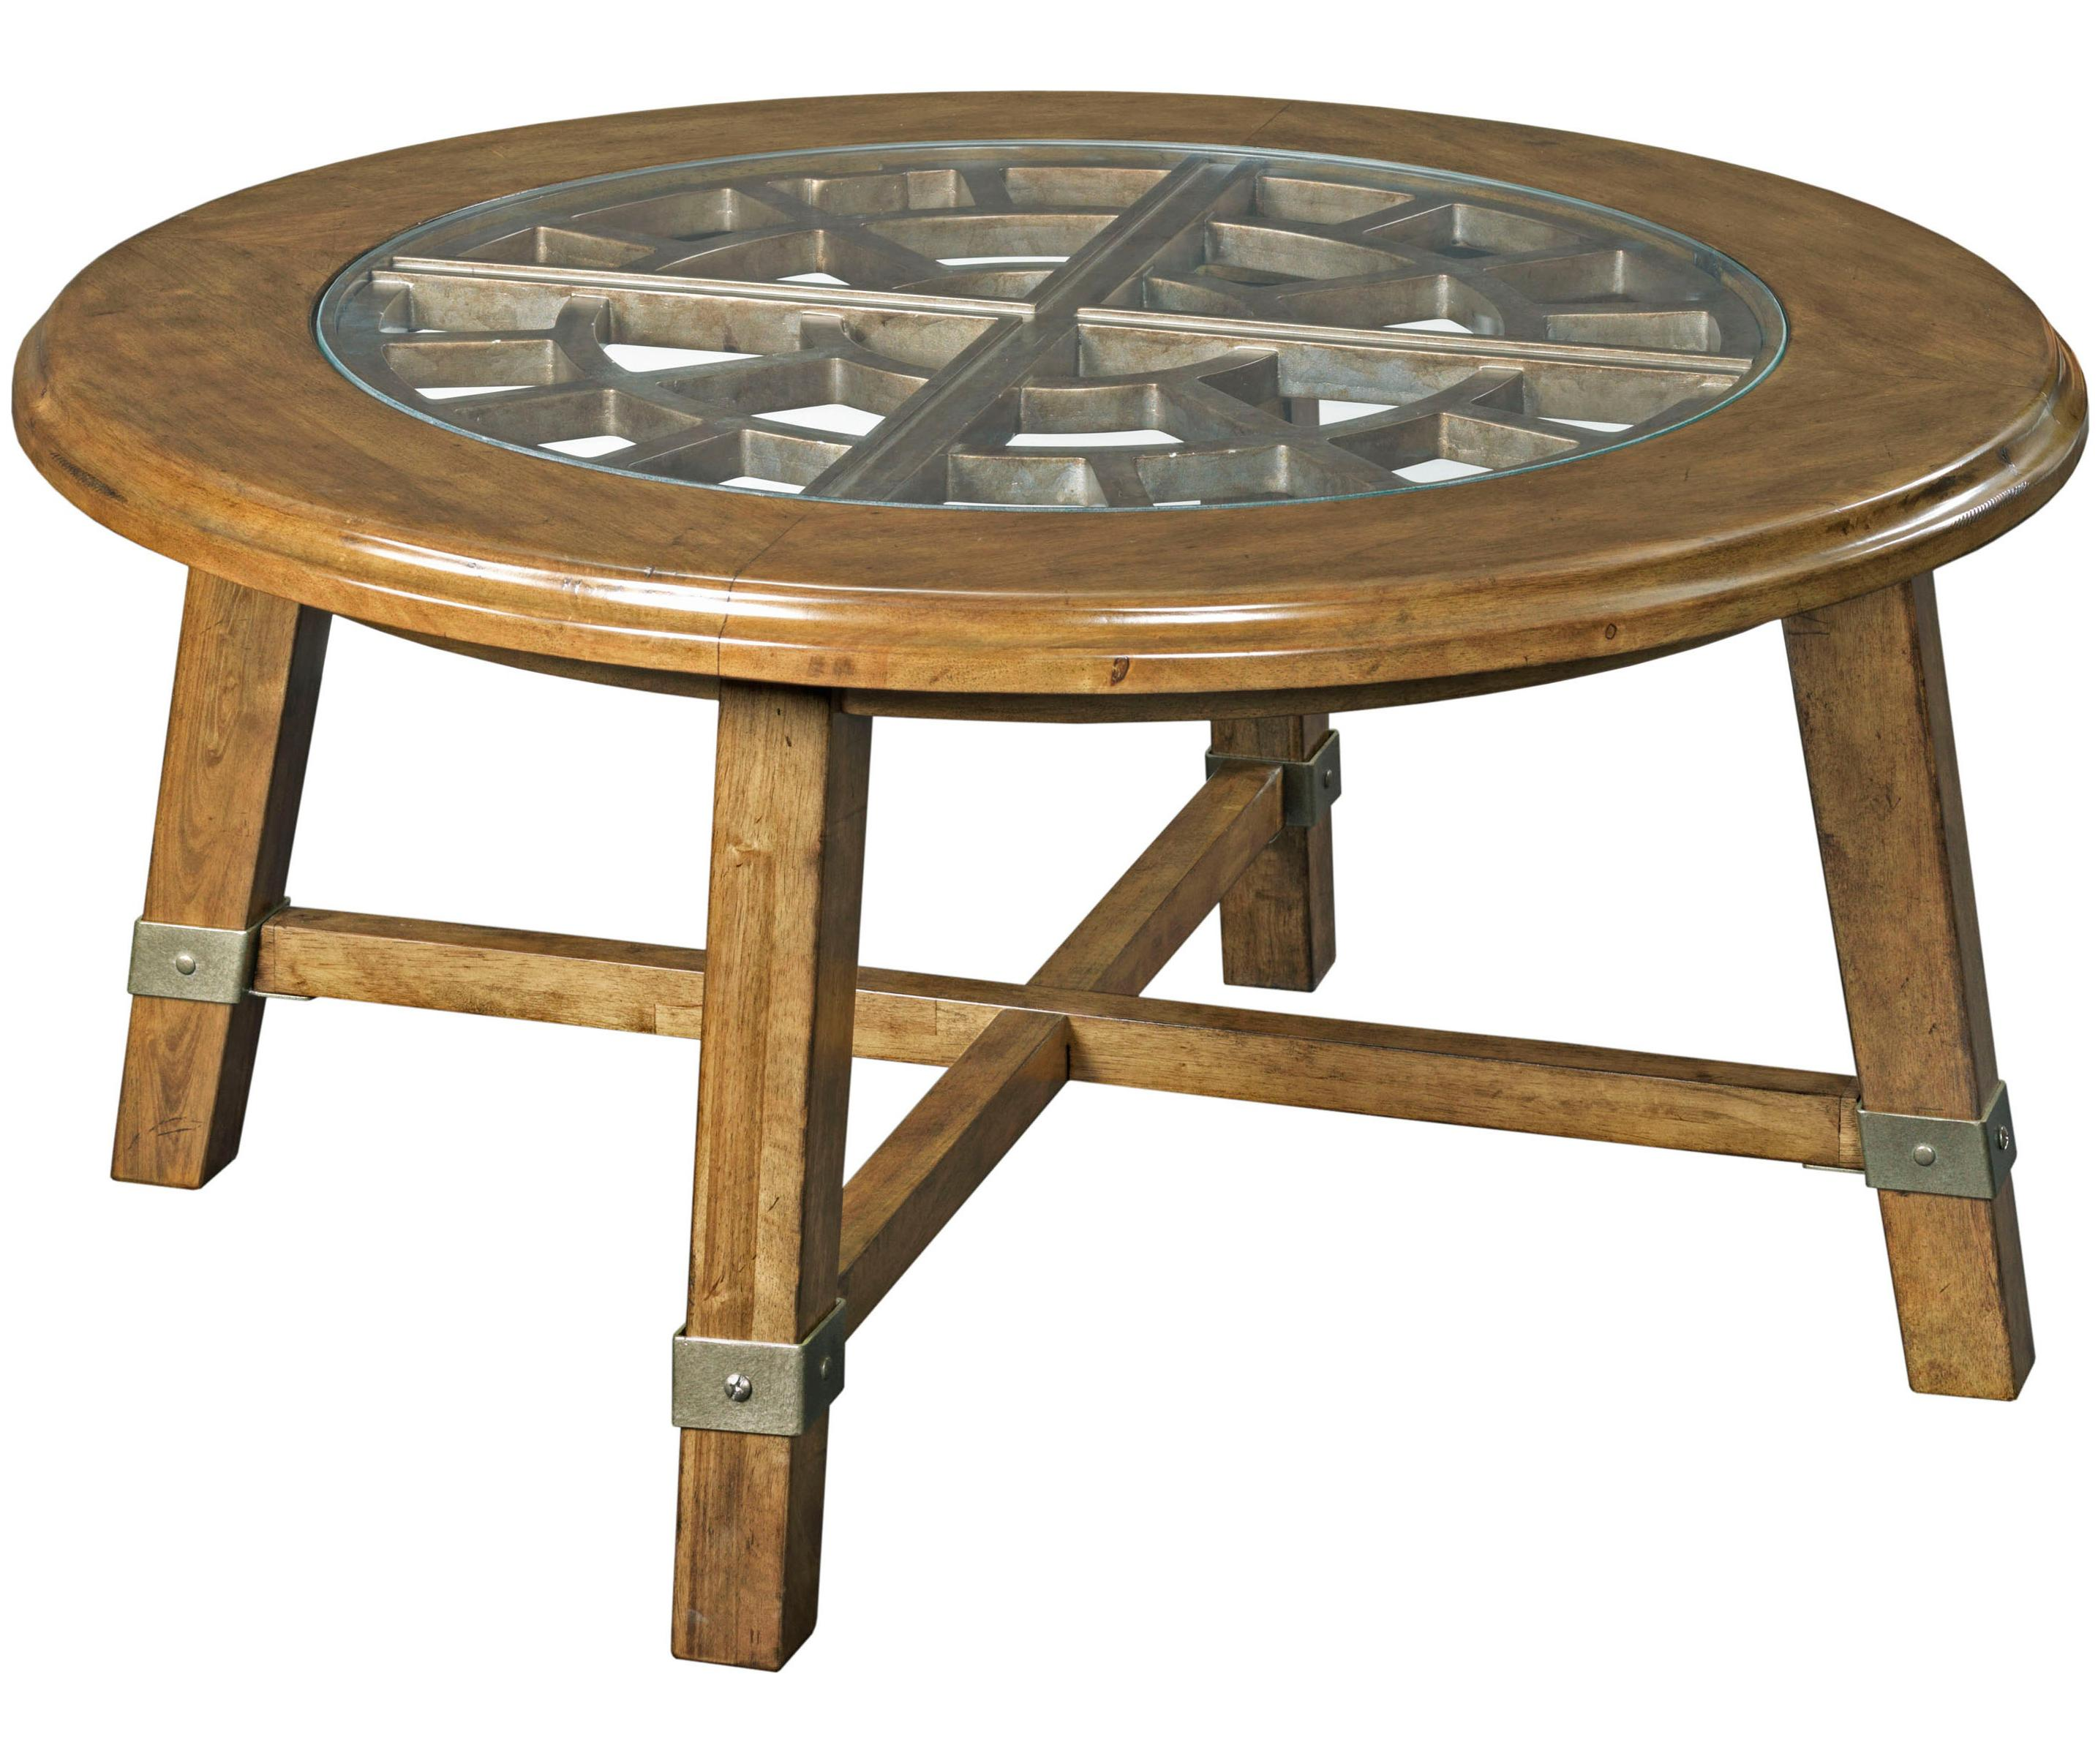 Broyhill Furniture New Vintage Round Grid Cocktail Table - Item Number: 4808-003